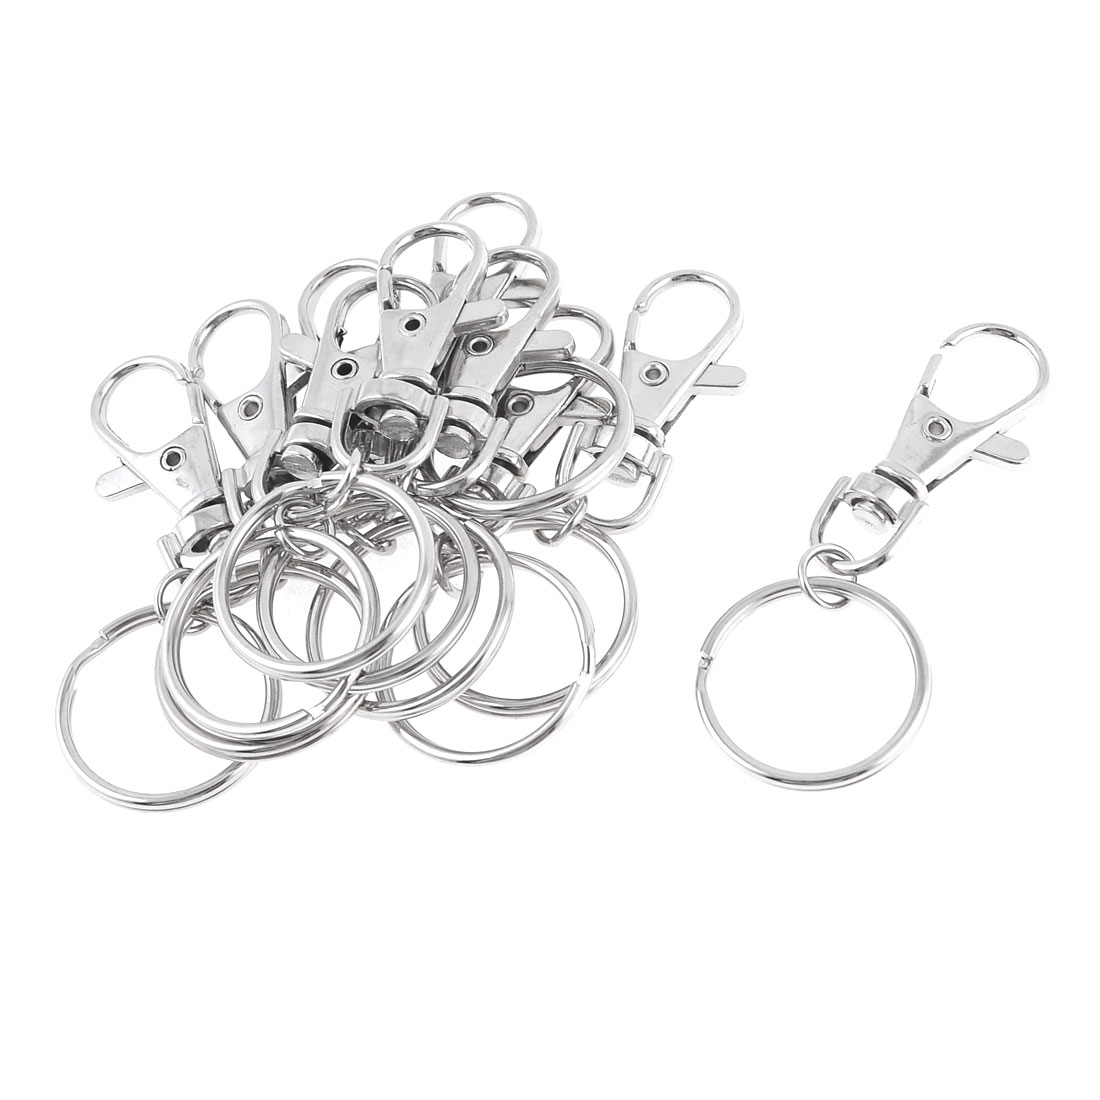 10 Pcs Ring Connecting Spring Loaded Flat Split Keyring Silver Tone